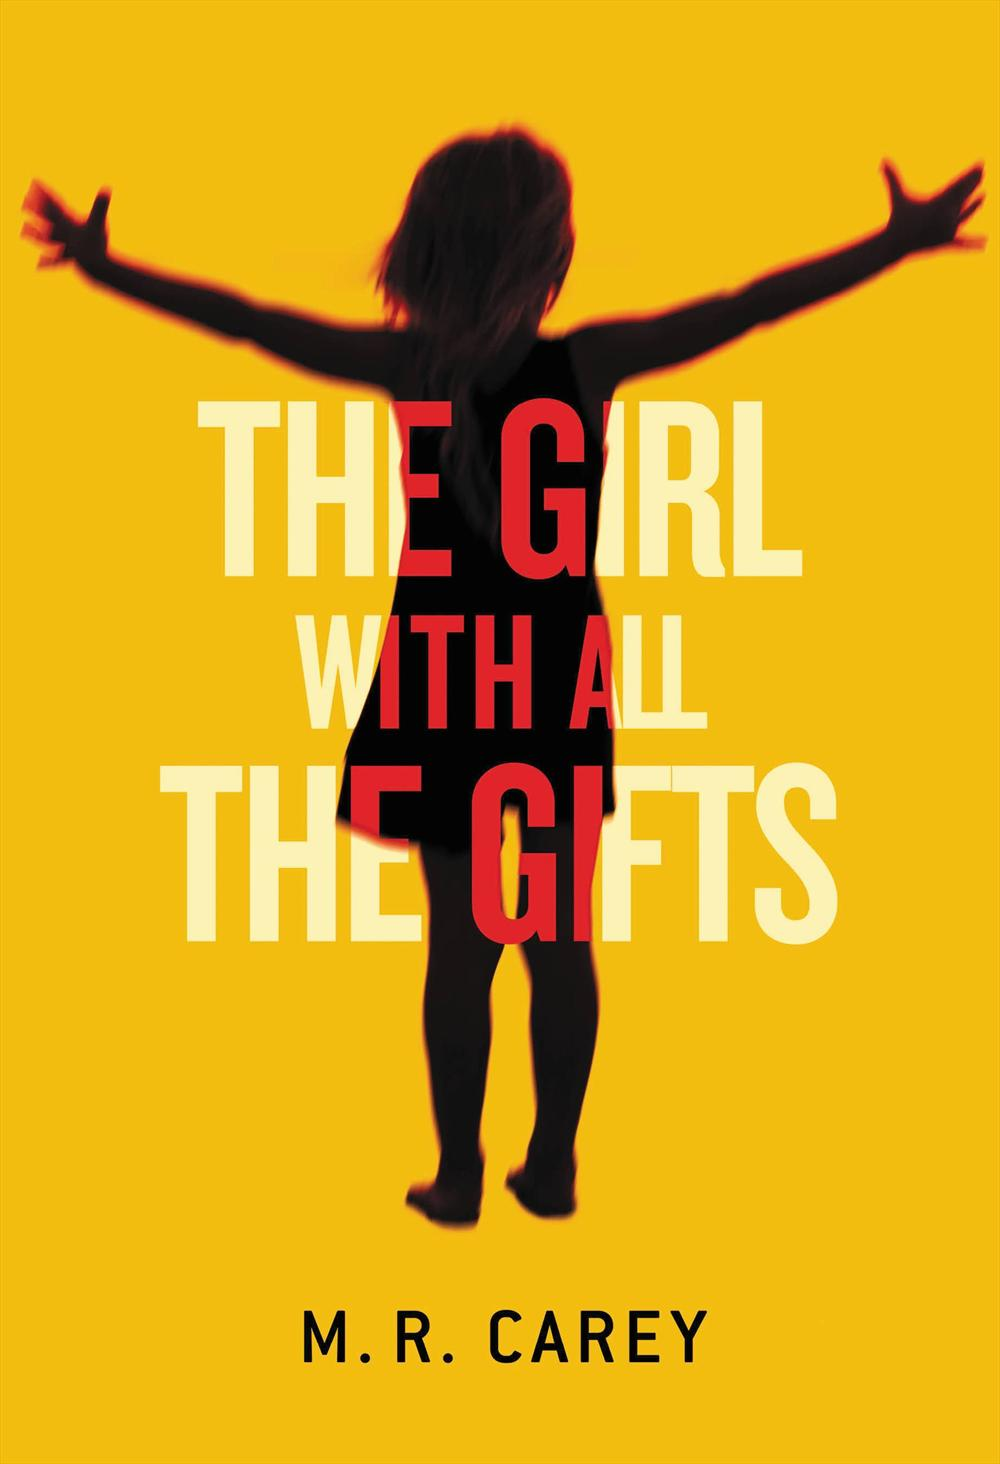 The Girl with All the Gifts (M.R. Carey)